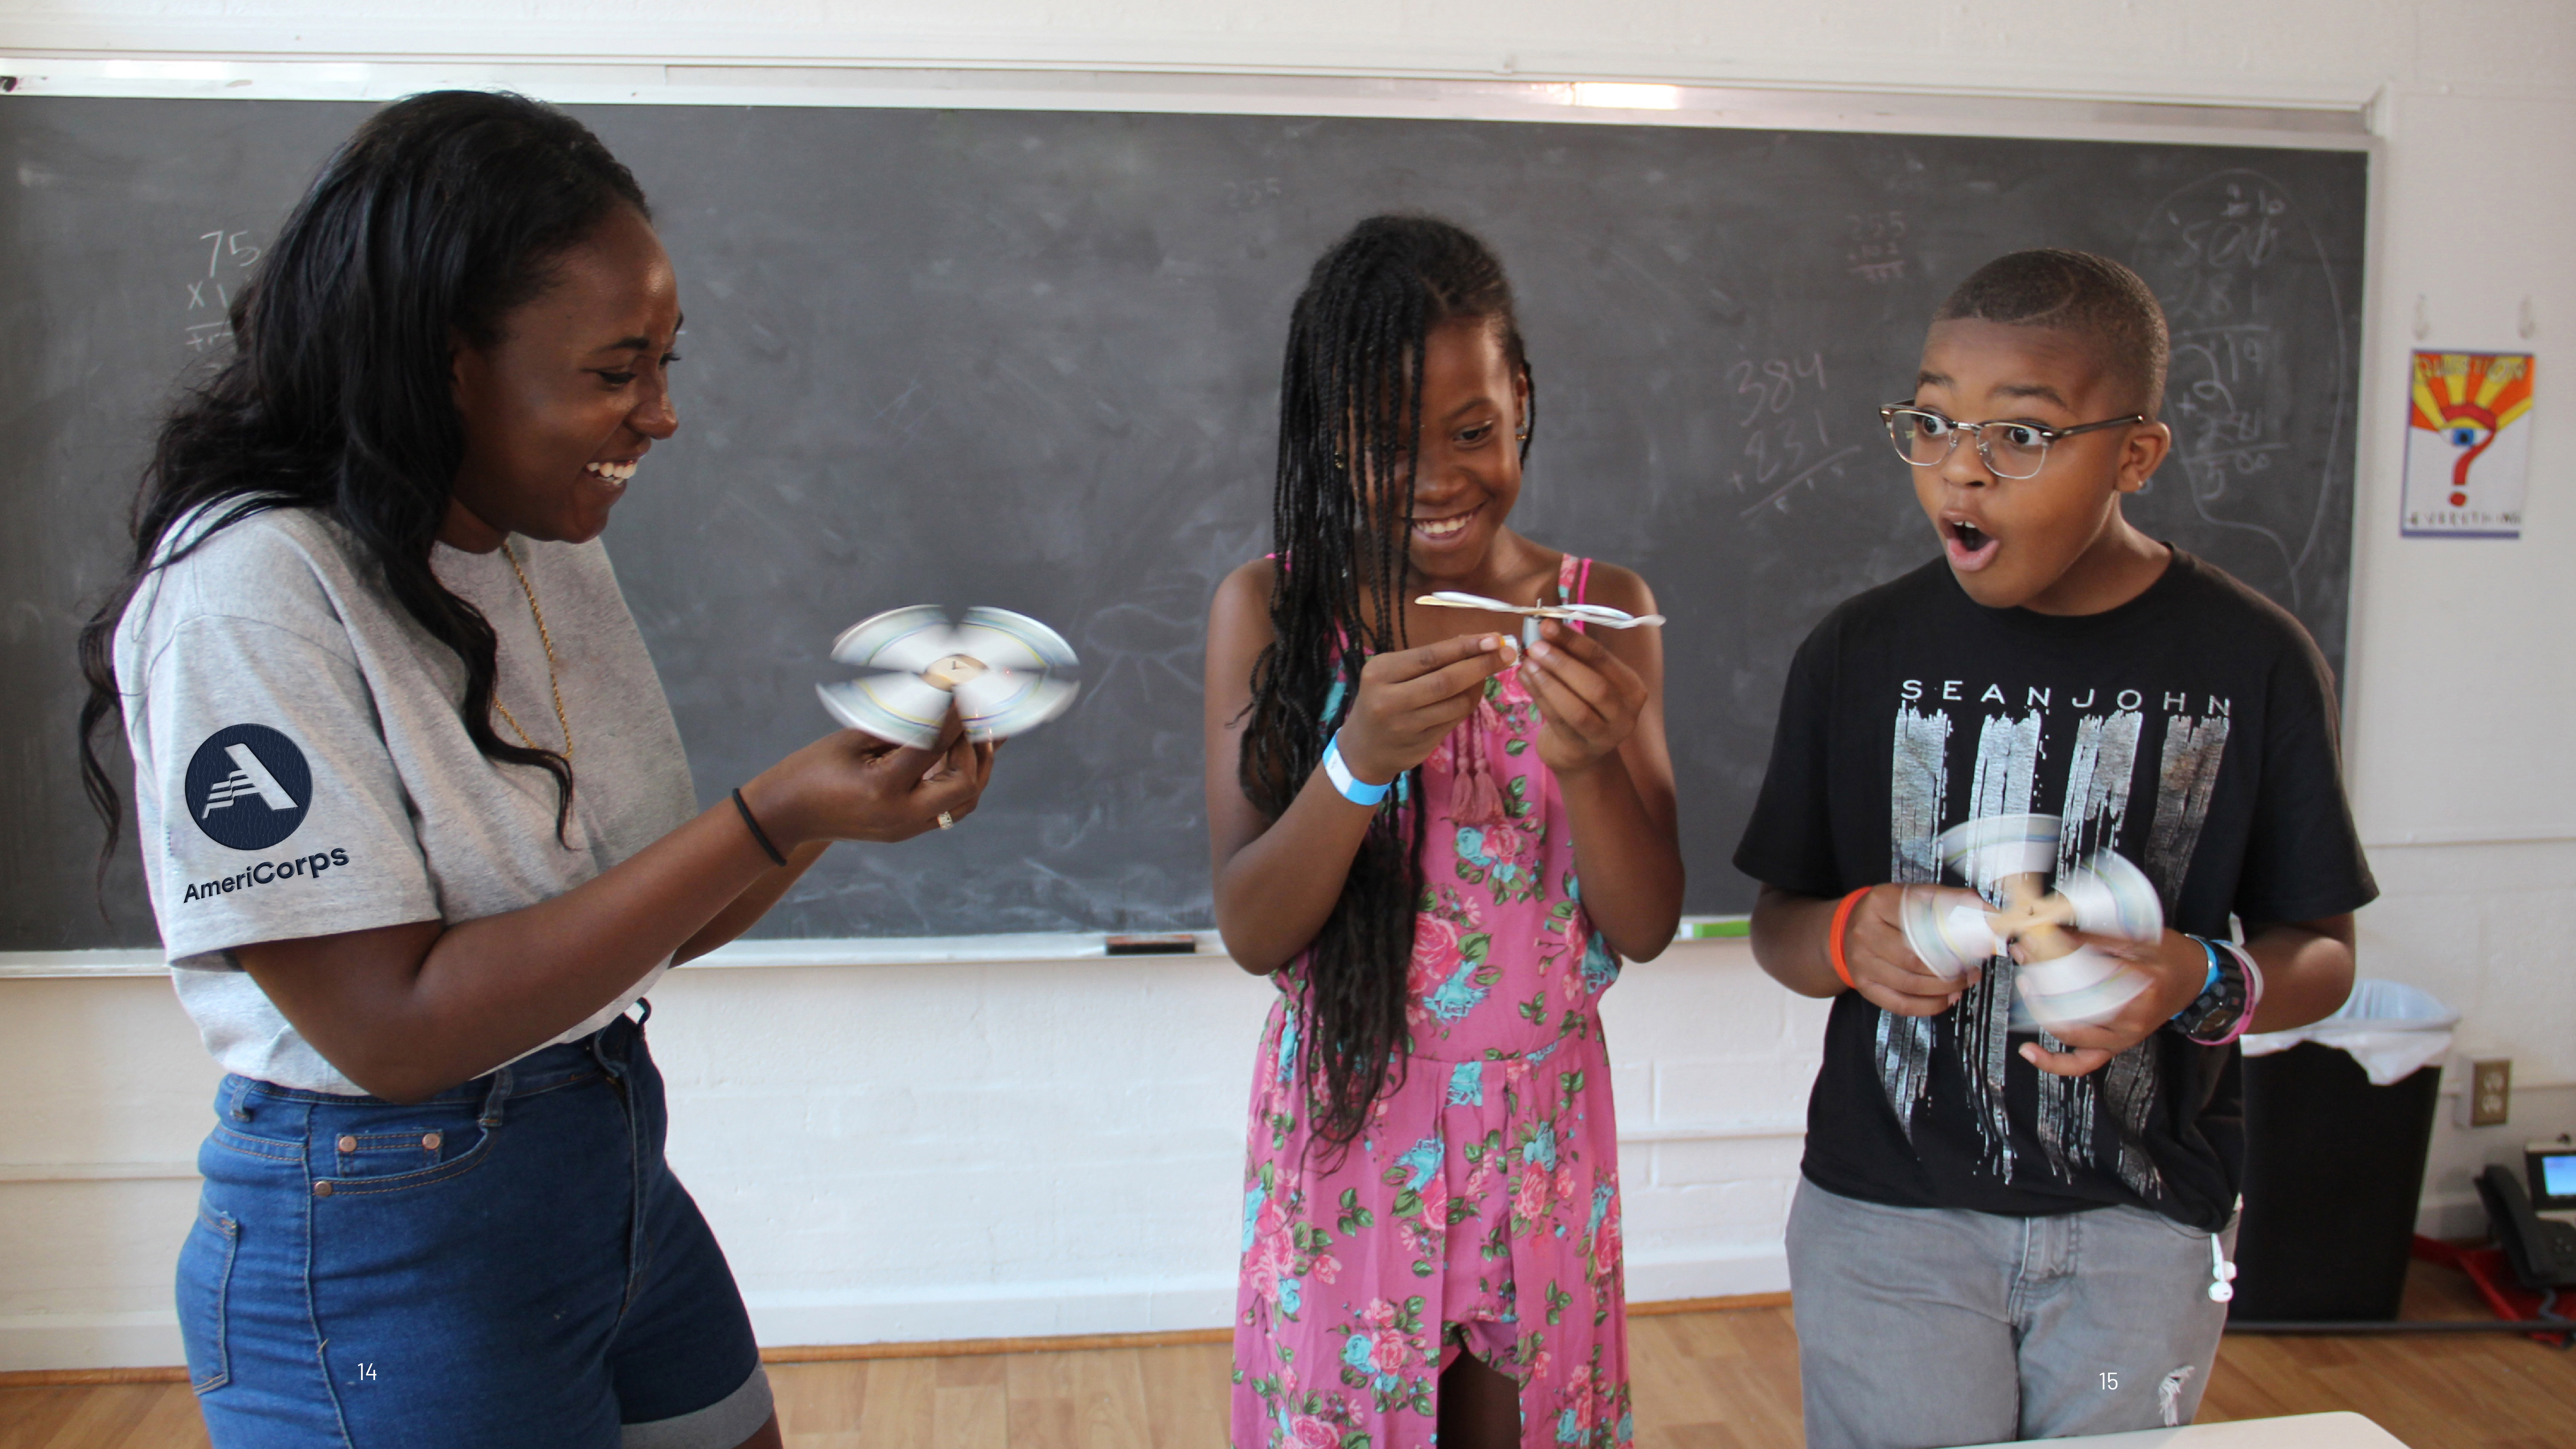 An AmeriCorps member demonstrates a STEM project in a classroom to two surprised students.